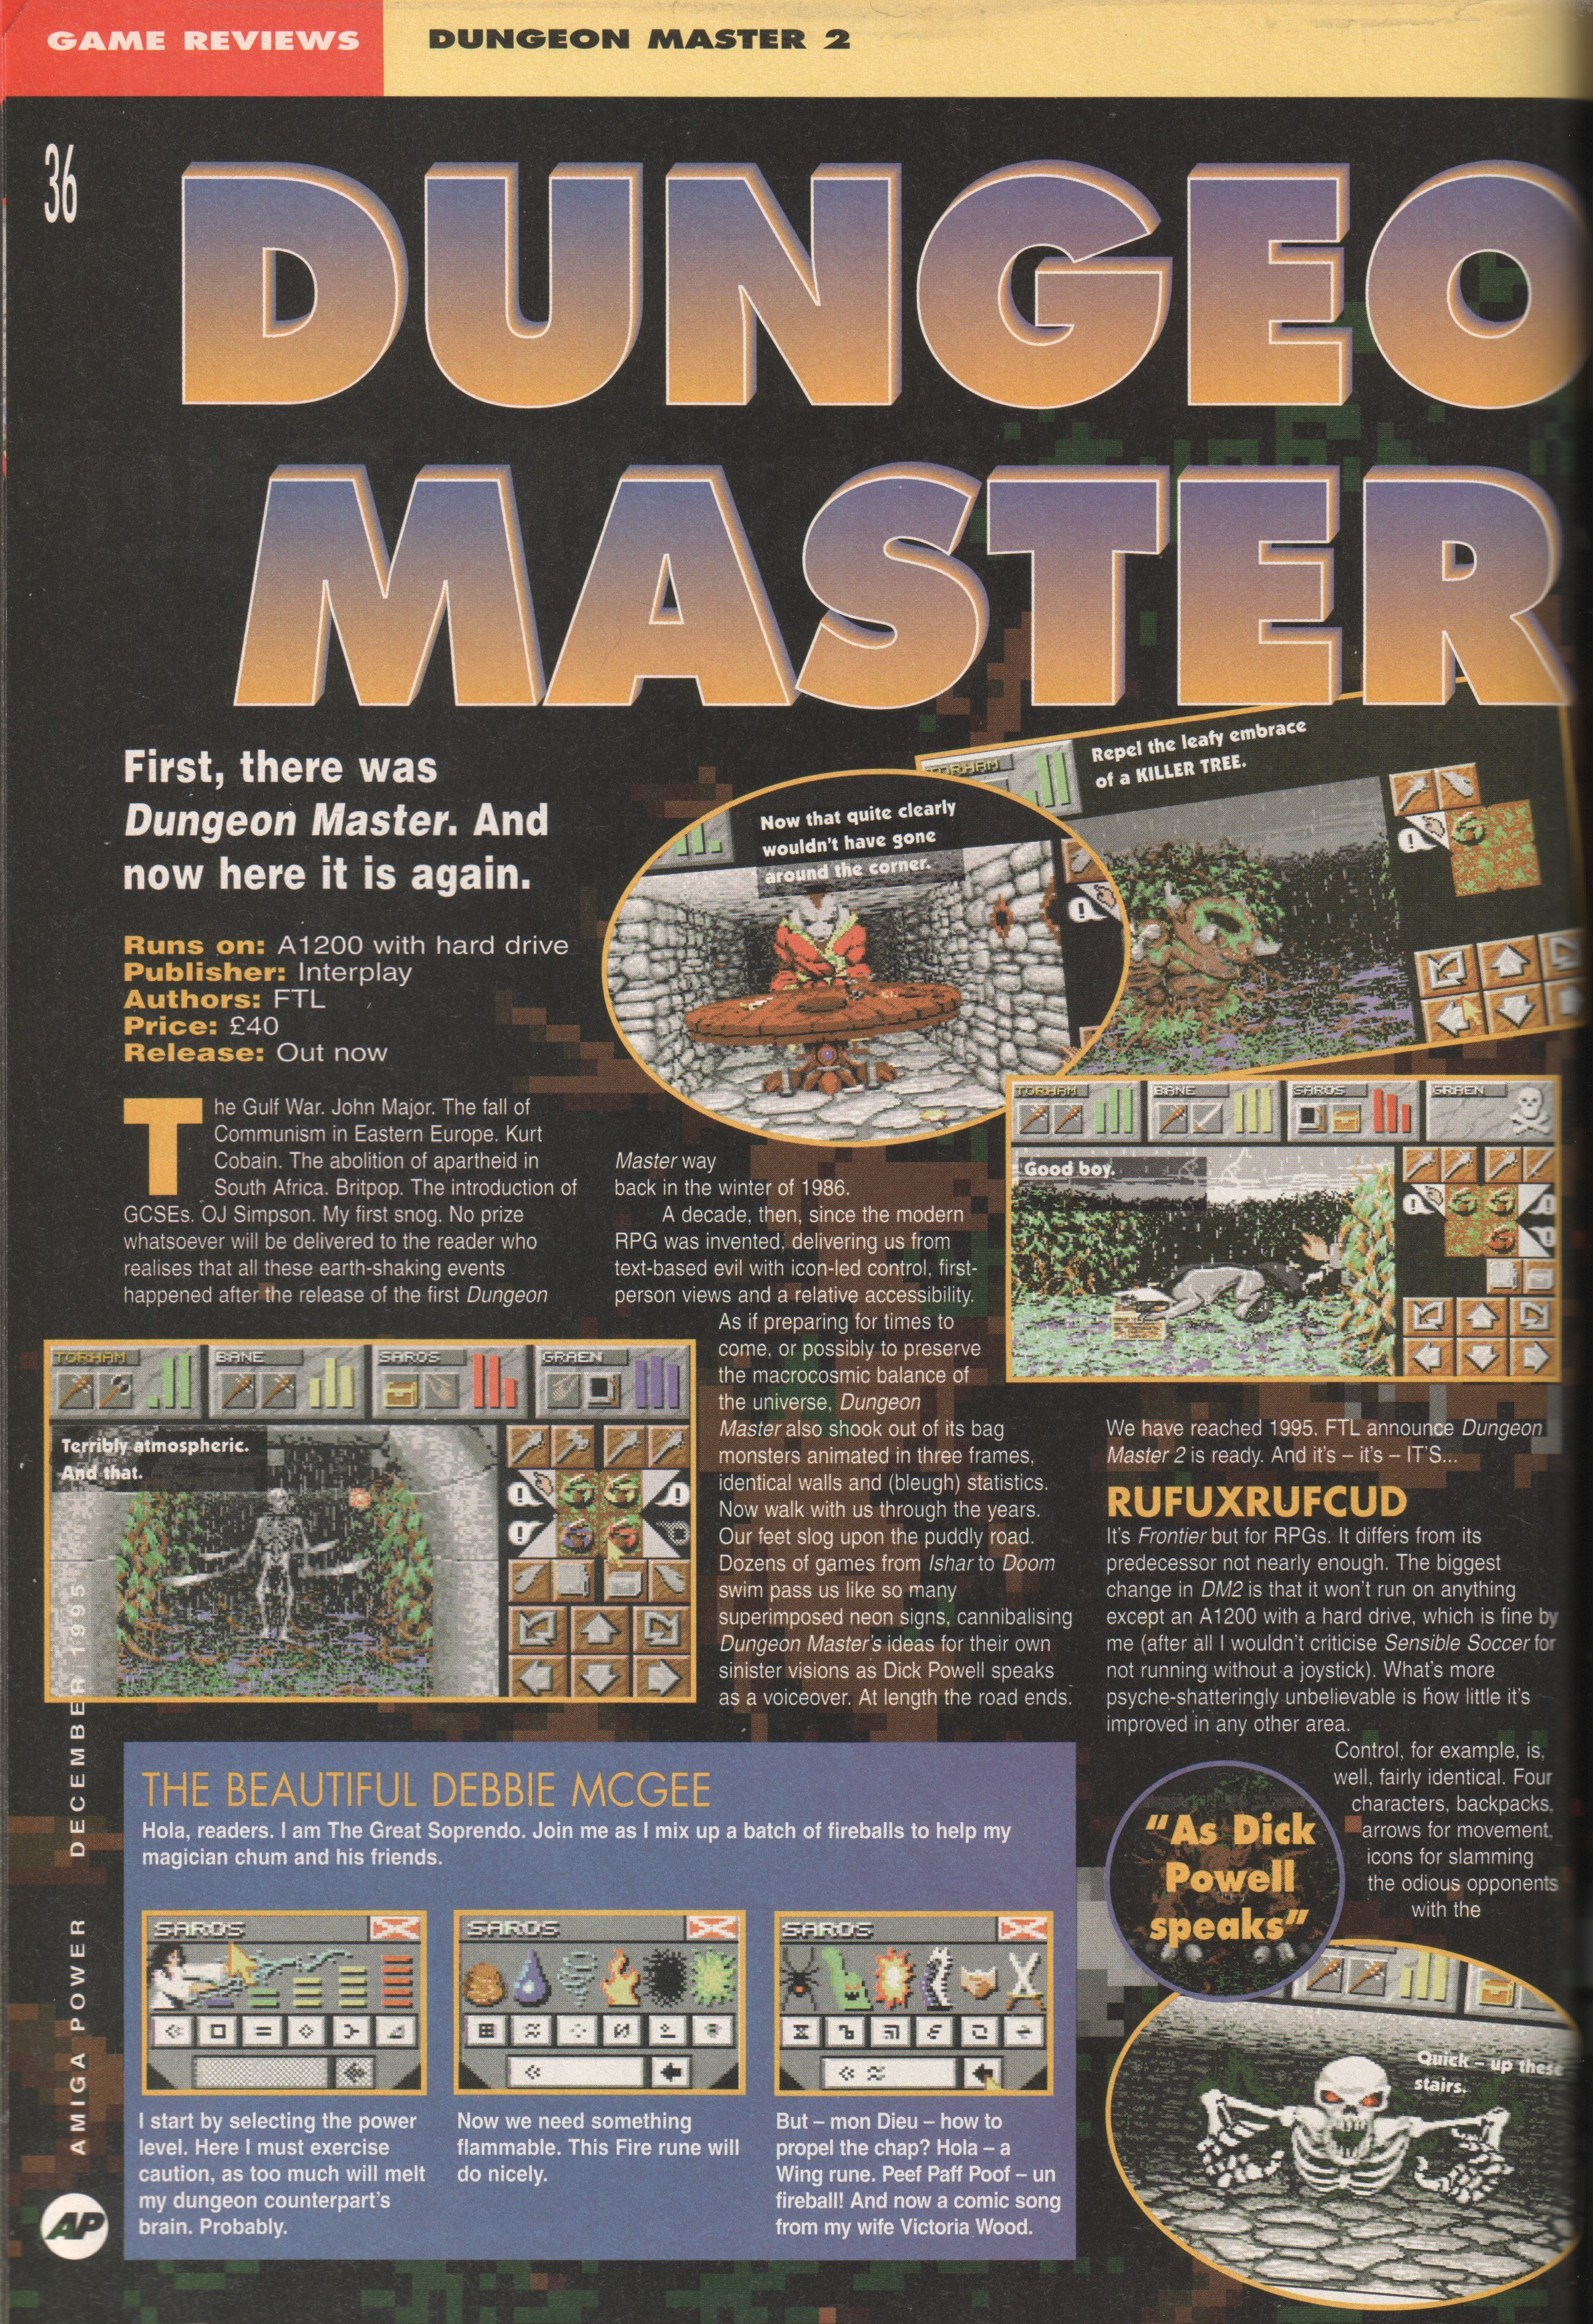 Dungeon Master II for Amiga Review published in British magazine 'Amiga Power', Issue #56 December 1995, Page 36